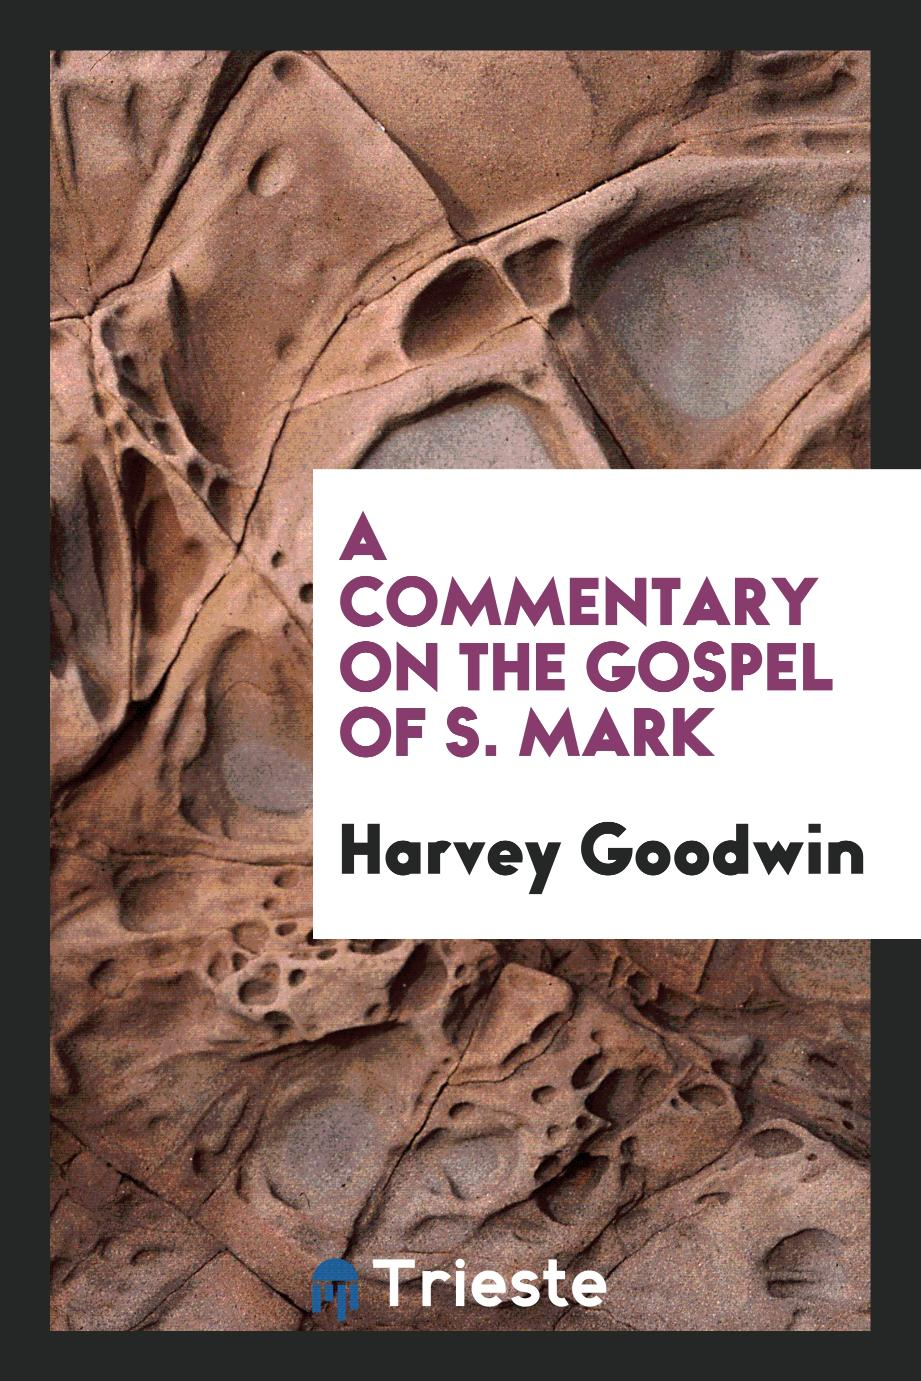 A Commentary on the Gospel of S. Mark